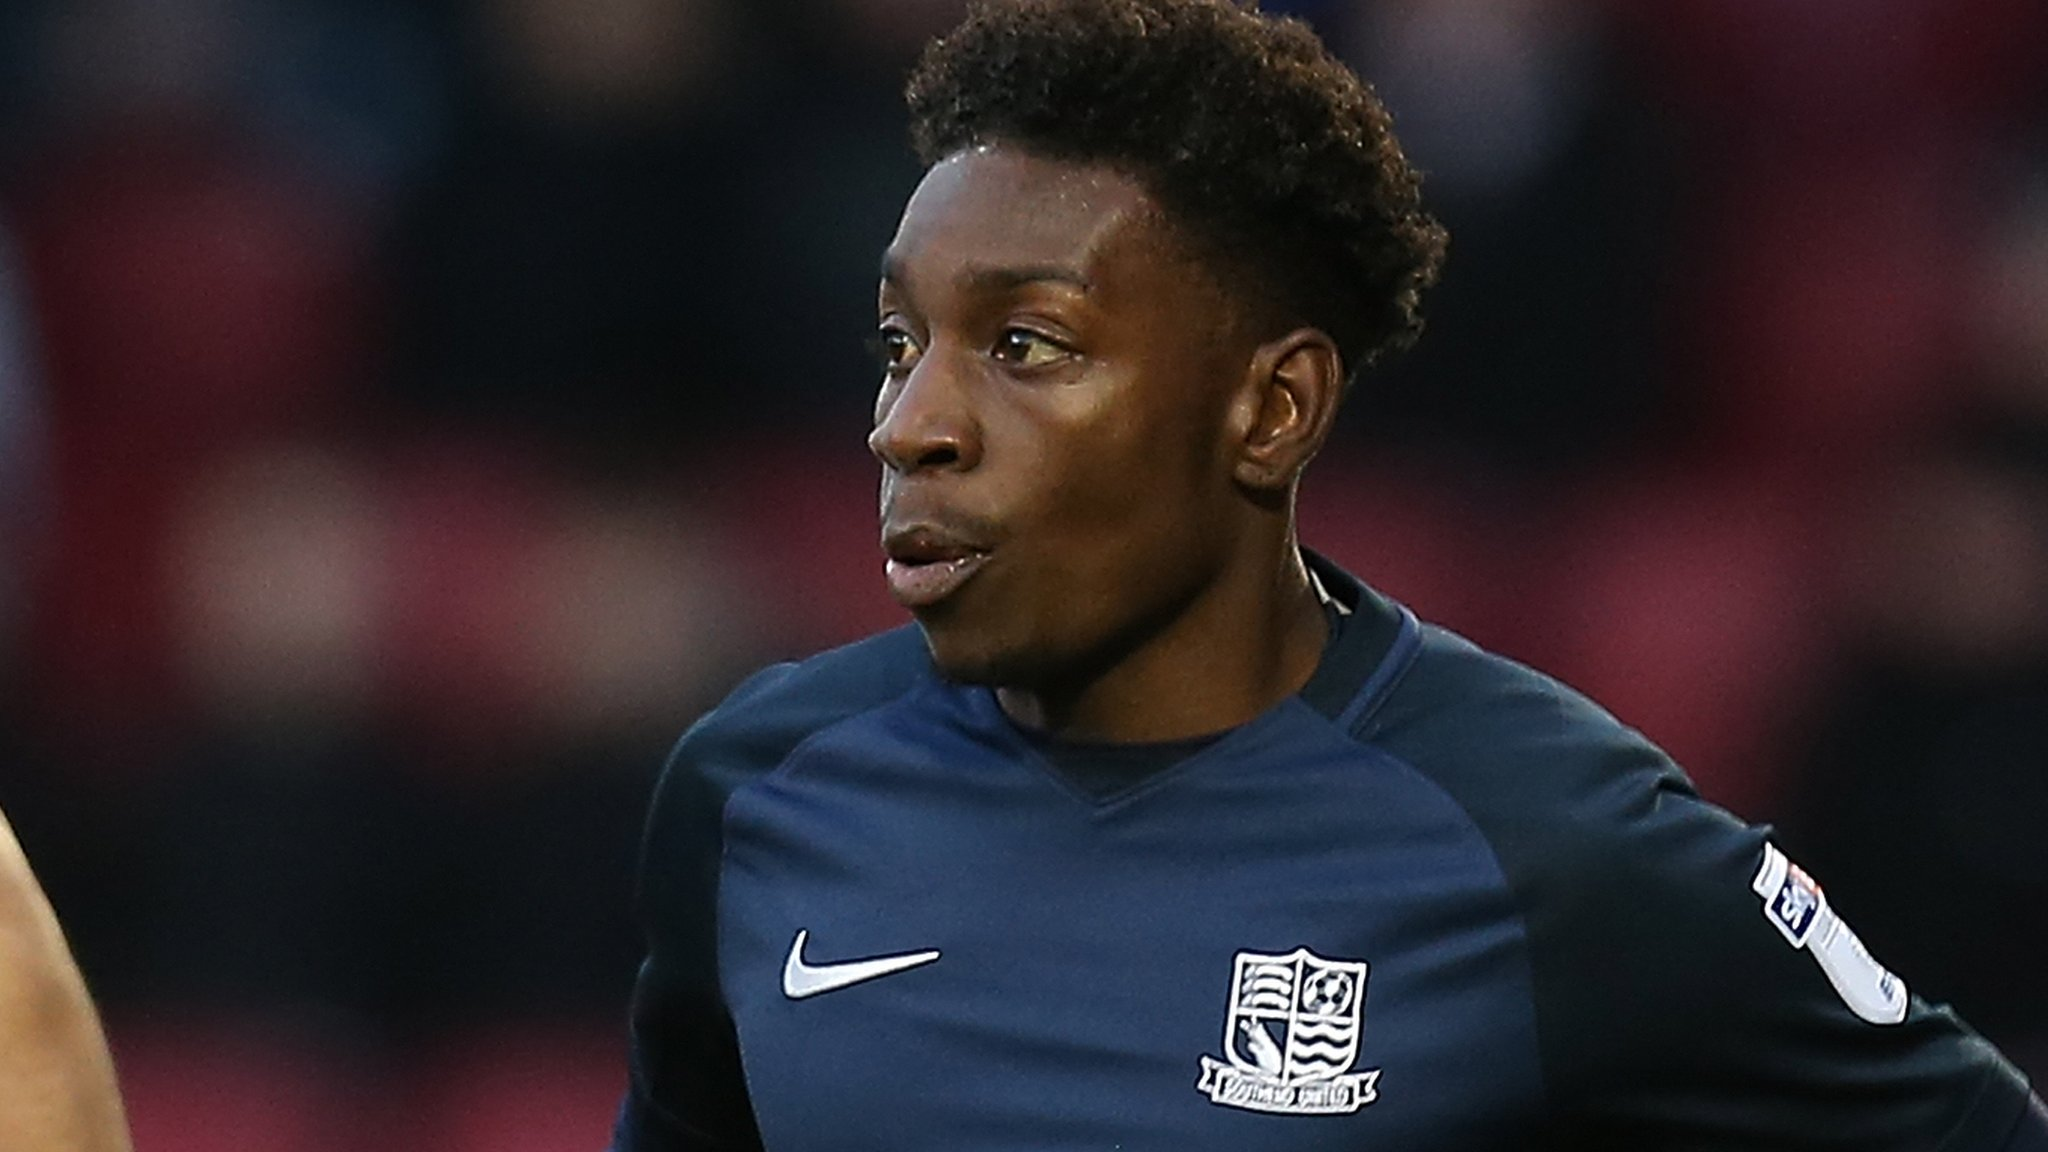 Jermaine McGlashan: Swindon Town sign winger after release by Southend